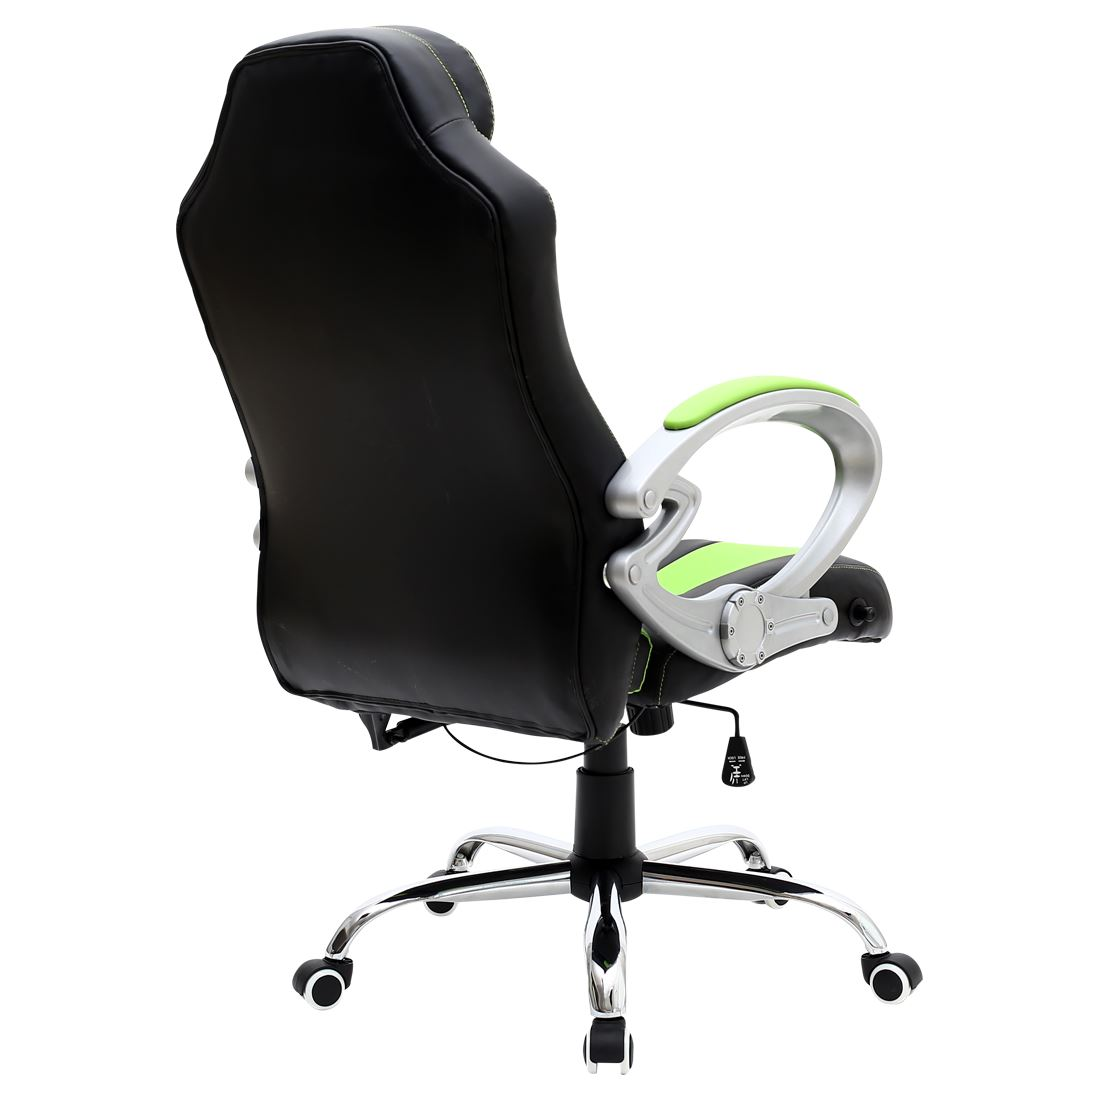 swivel chair for car hammock stand monaco gaming sports seat home office reclining